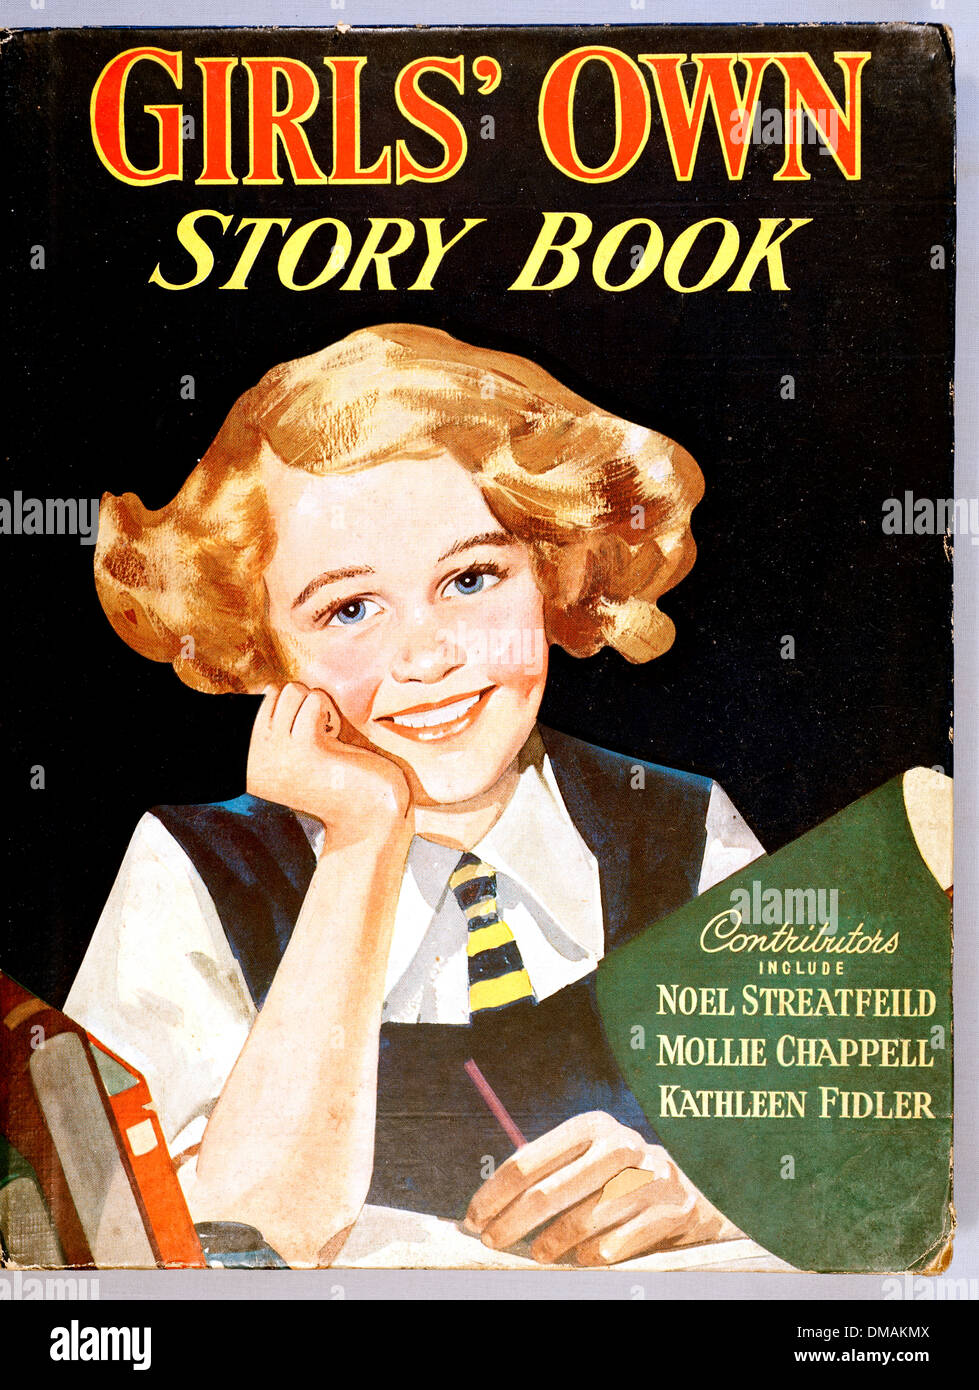 Vintage Old Girls Own Story Book Illustration Historical Archival Document - Stock Image